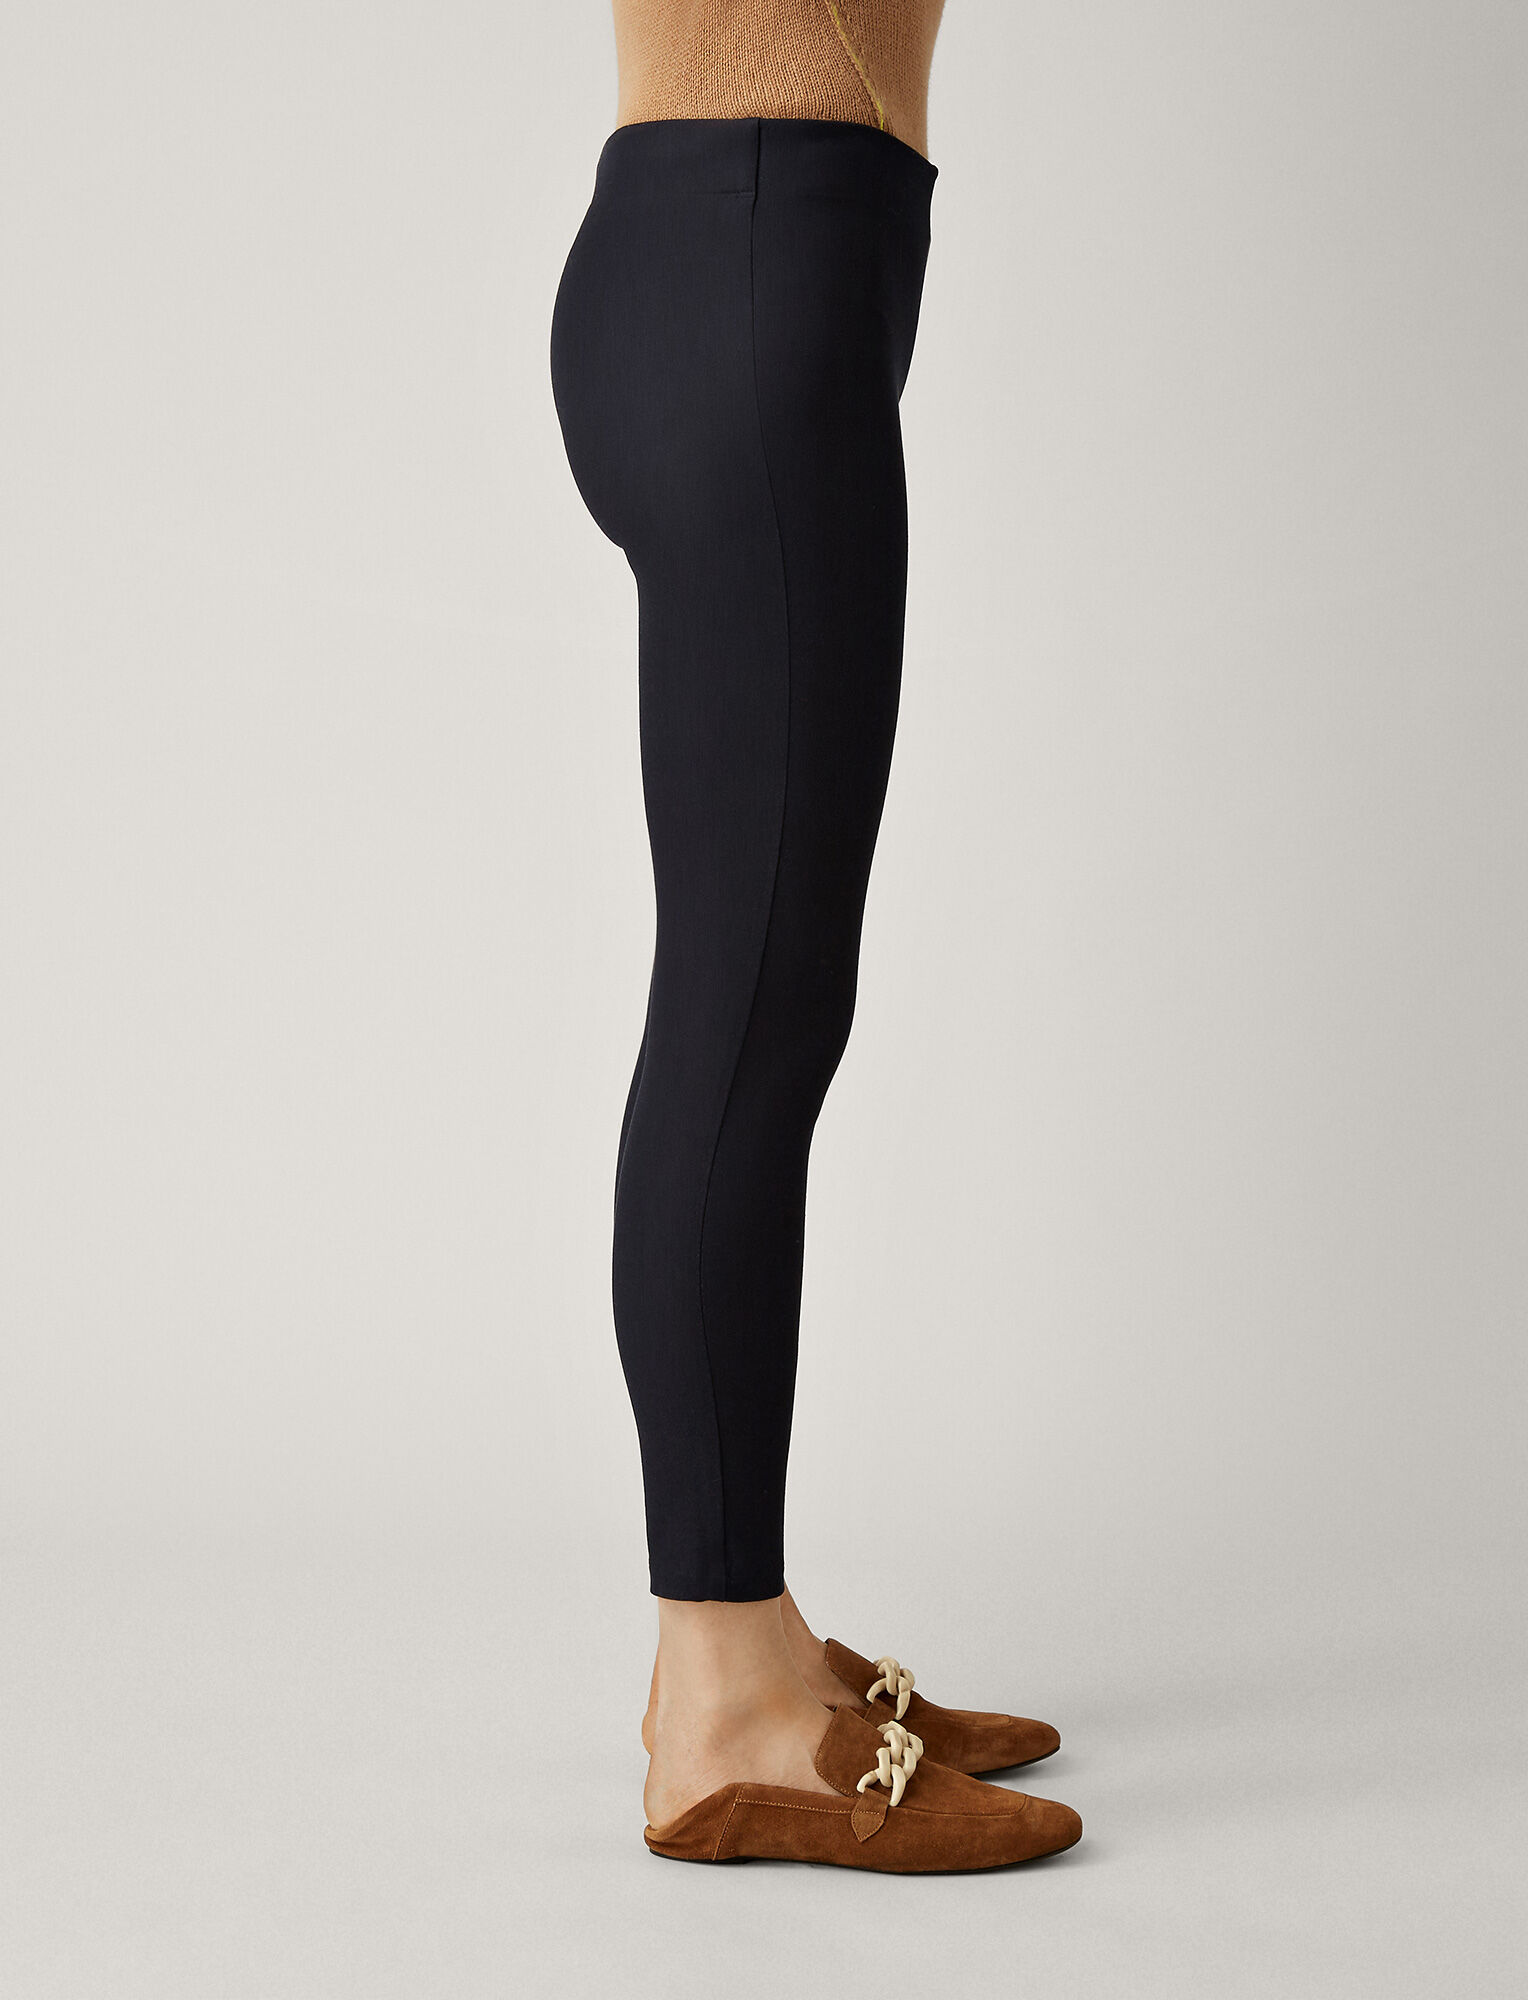 Joseph, Nitro Gabardine Stretch Leggings, in NAVY